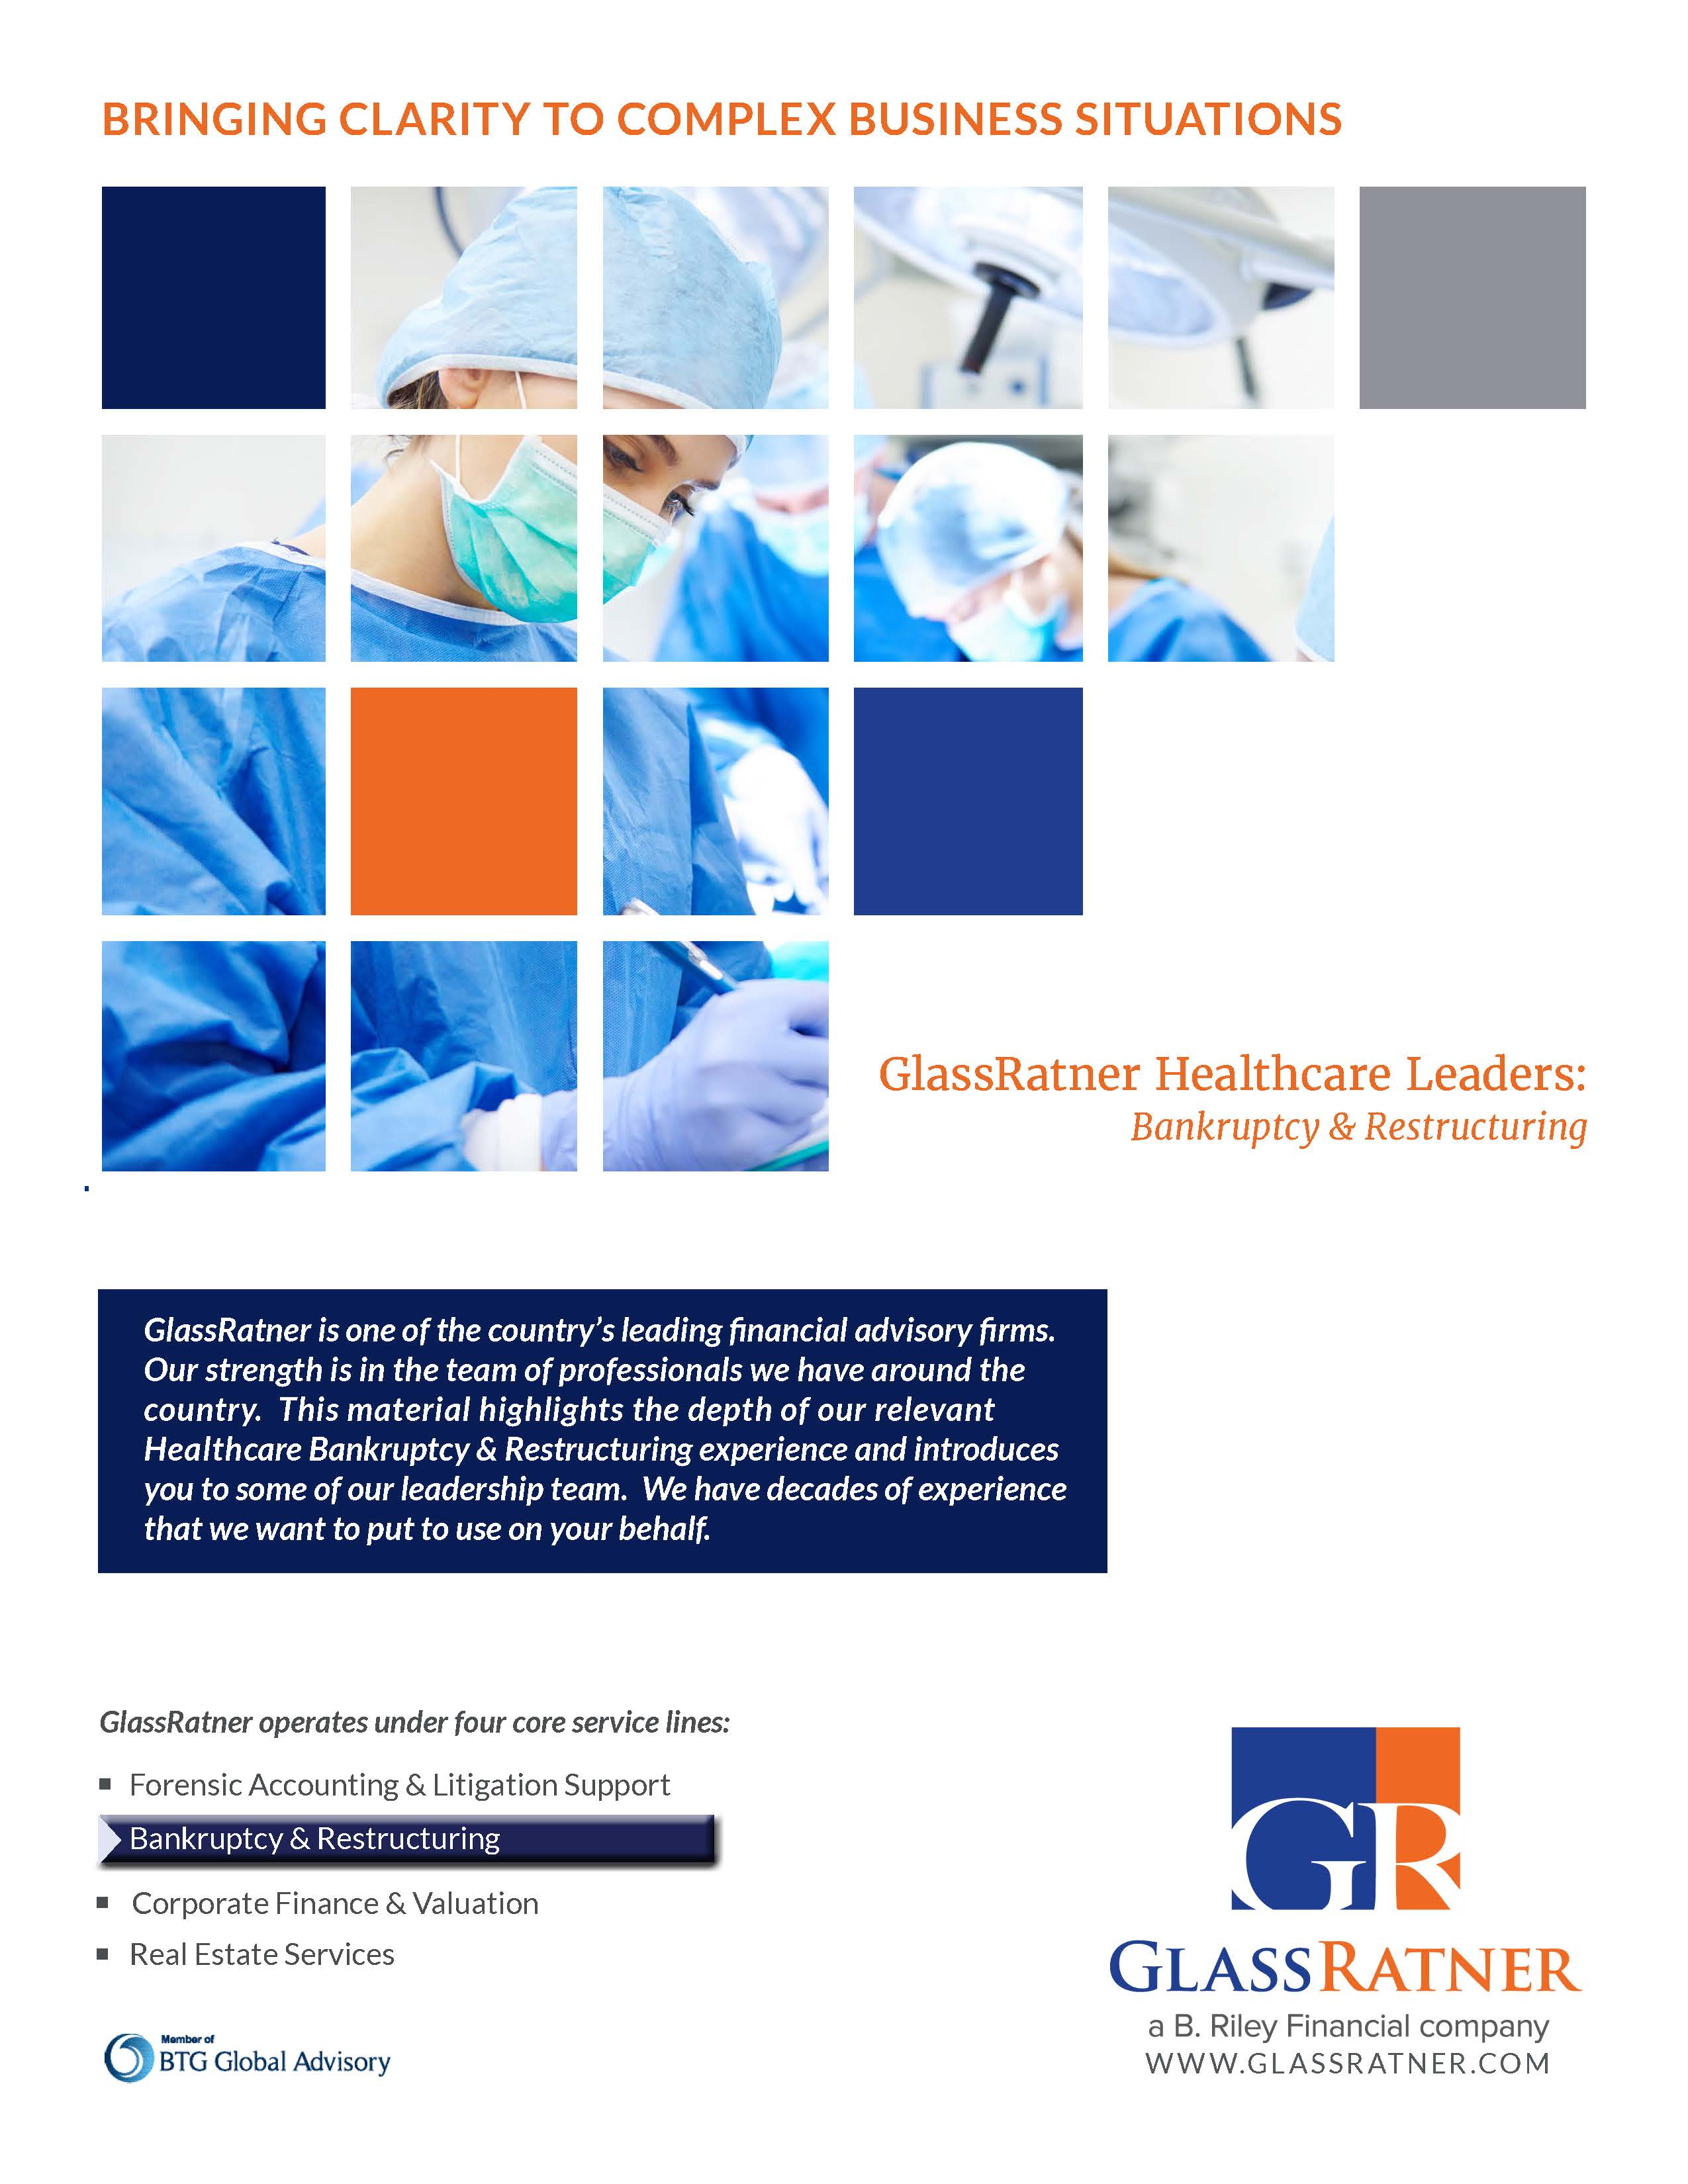 GlassRatner Releases Healthcare Leaders in Bankruptcy & Restructuring Brochure